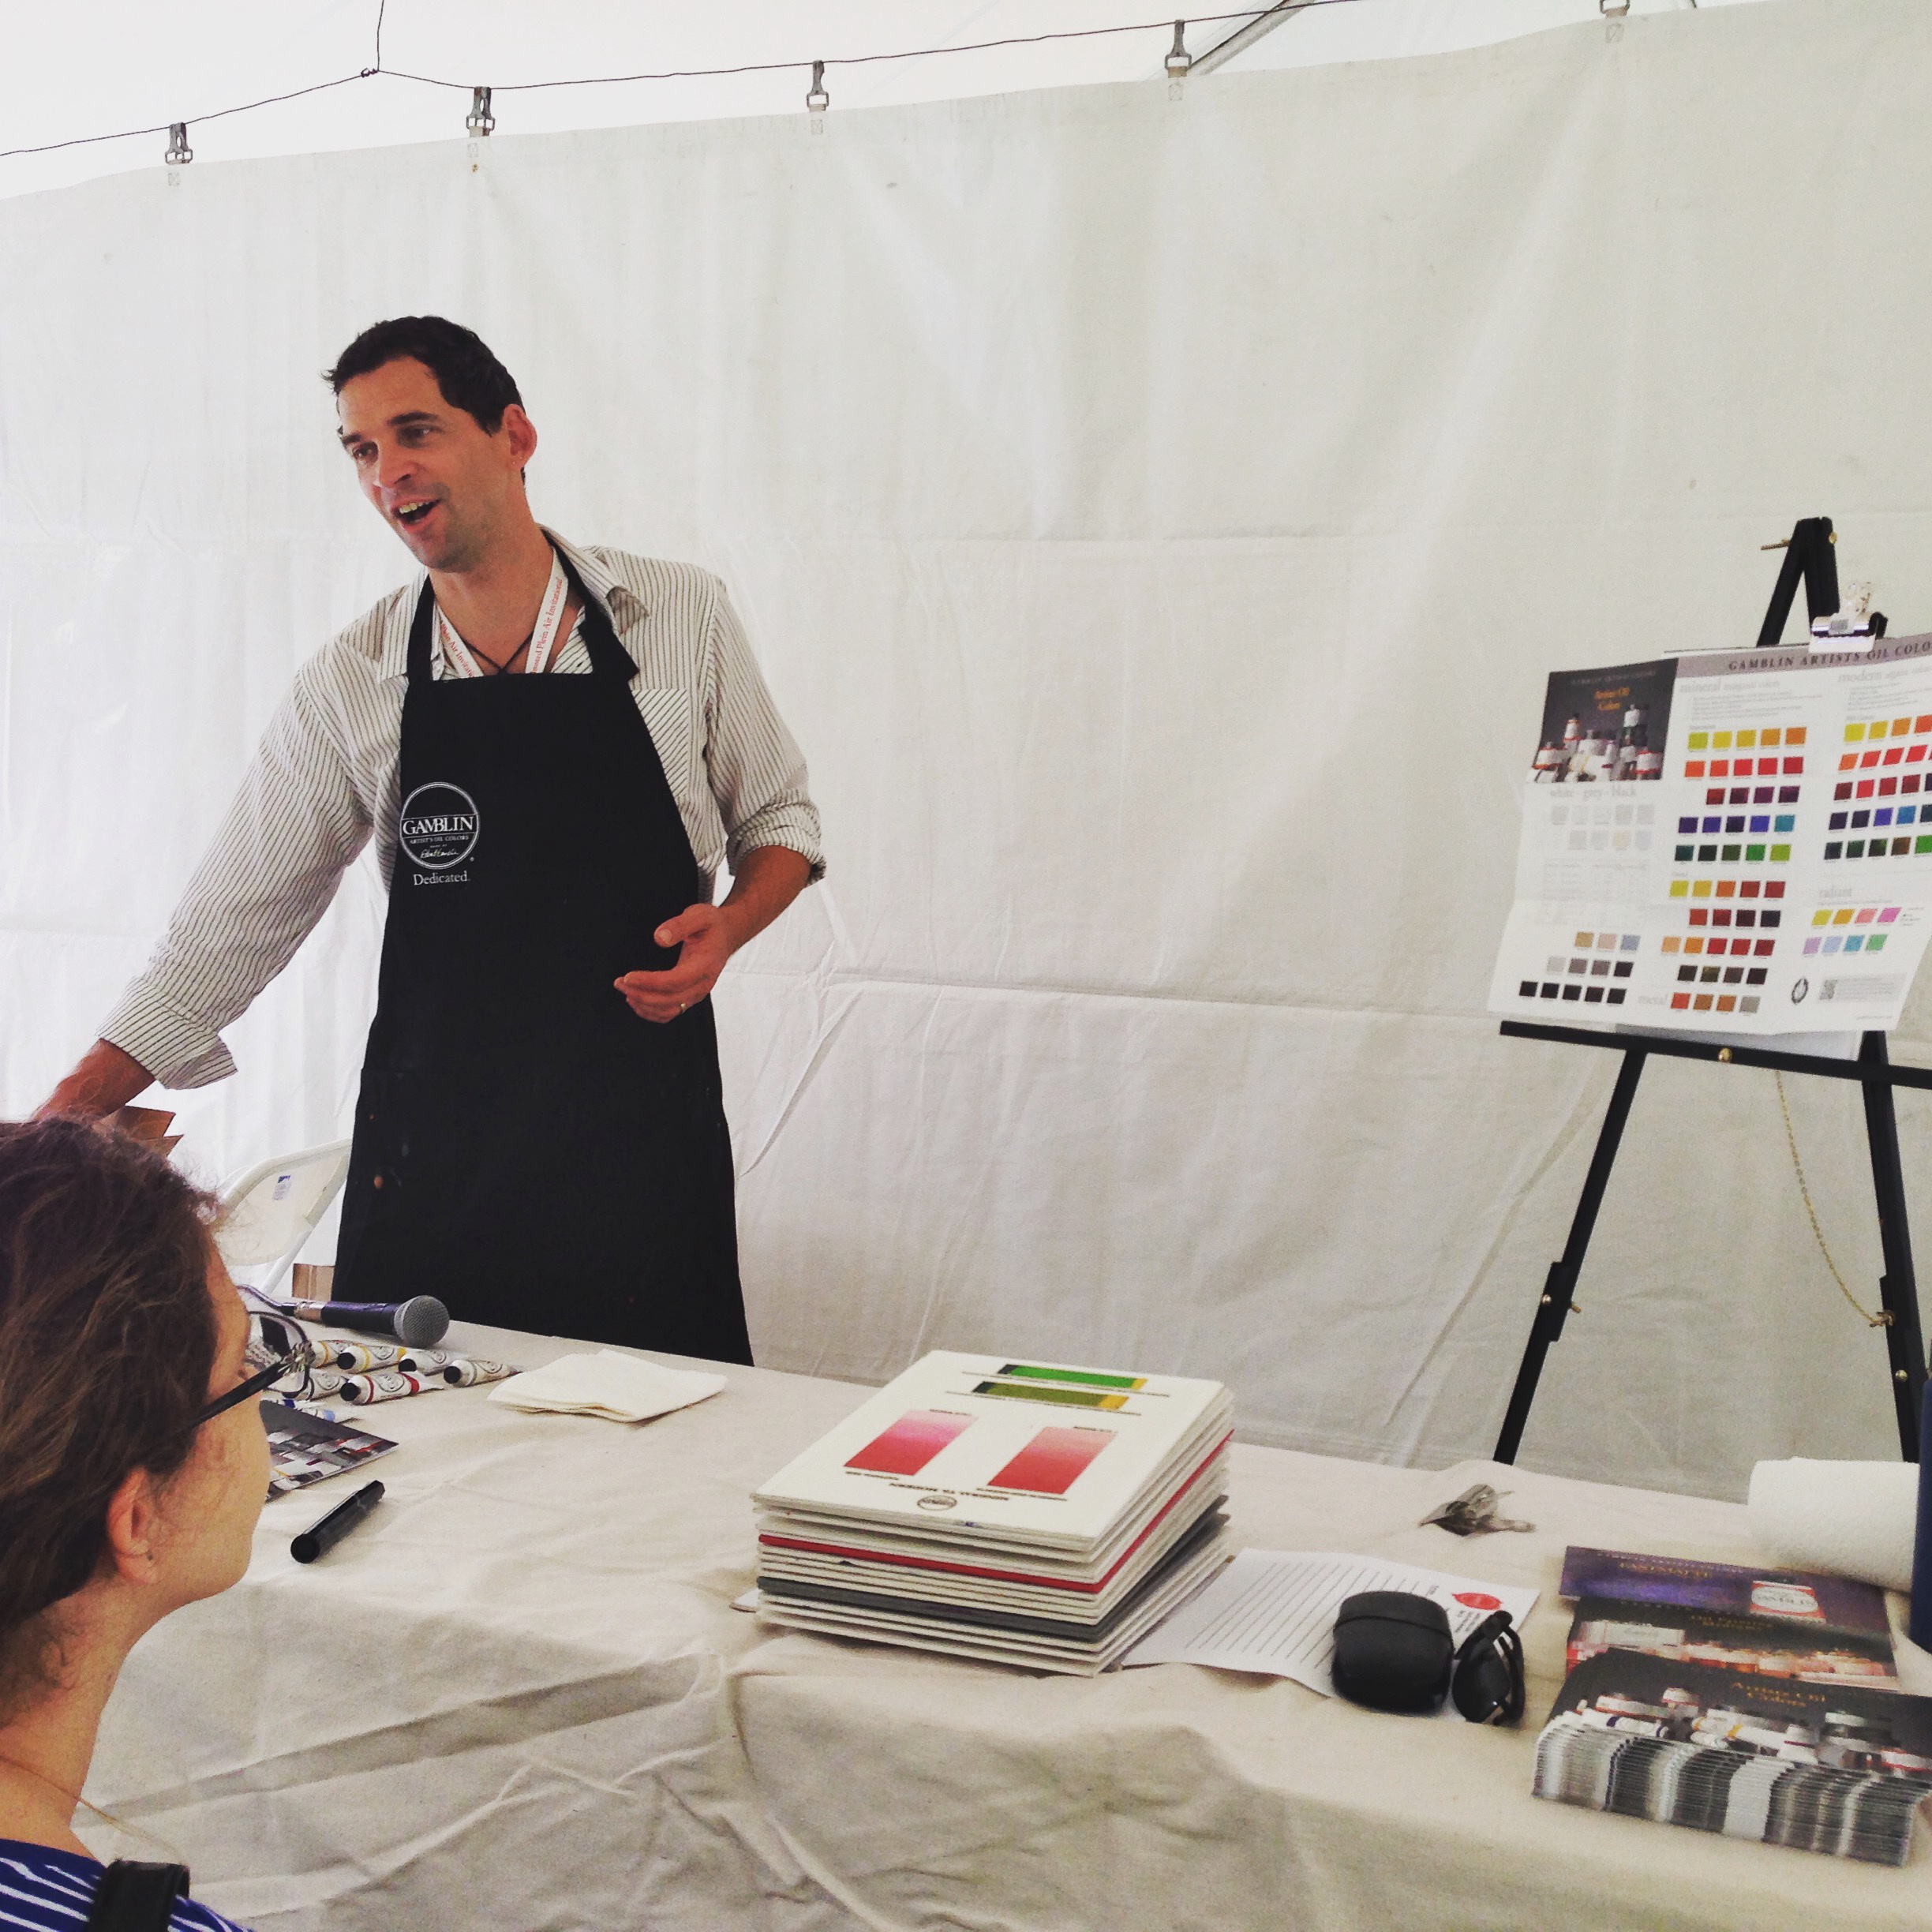 Scott Gellatly is an artist and the product manager for Gamblin Artist Colors